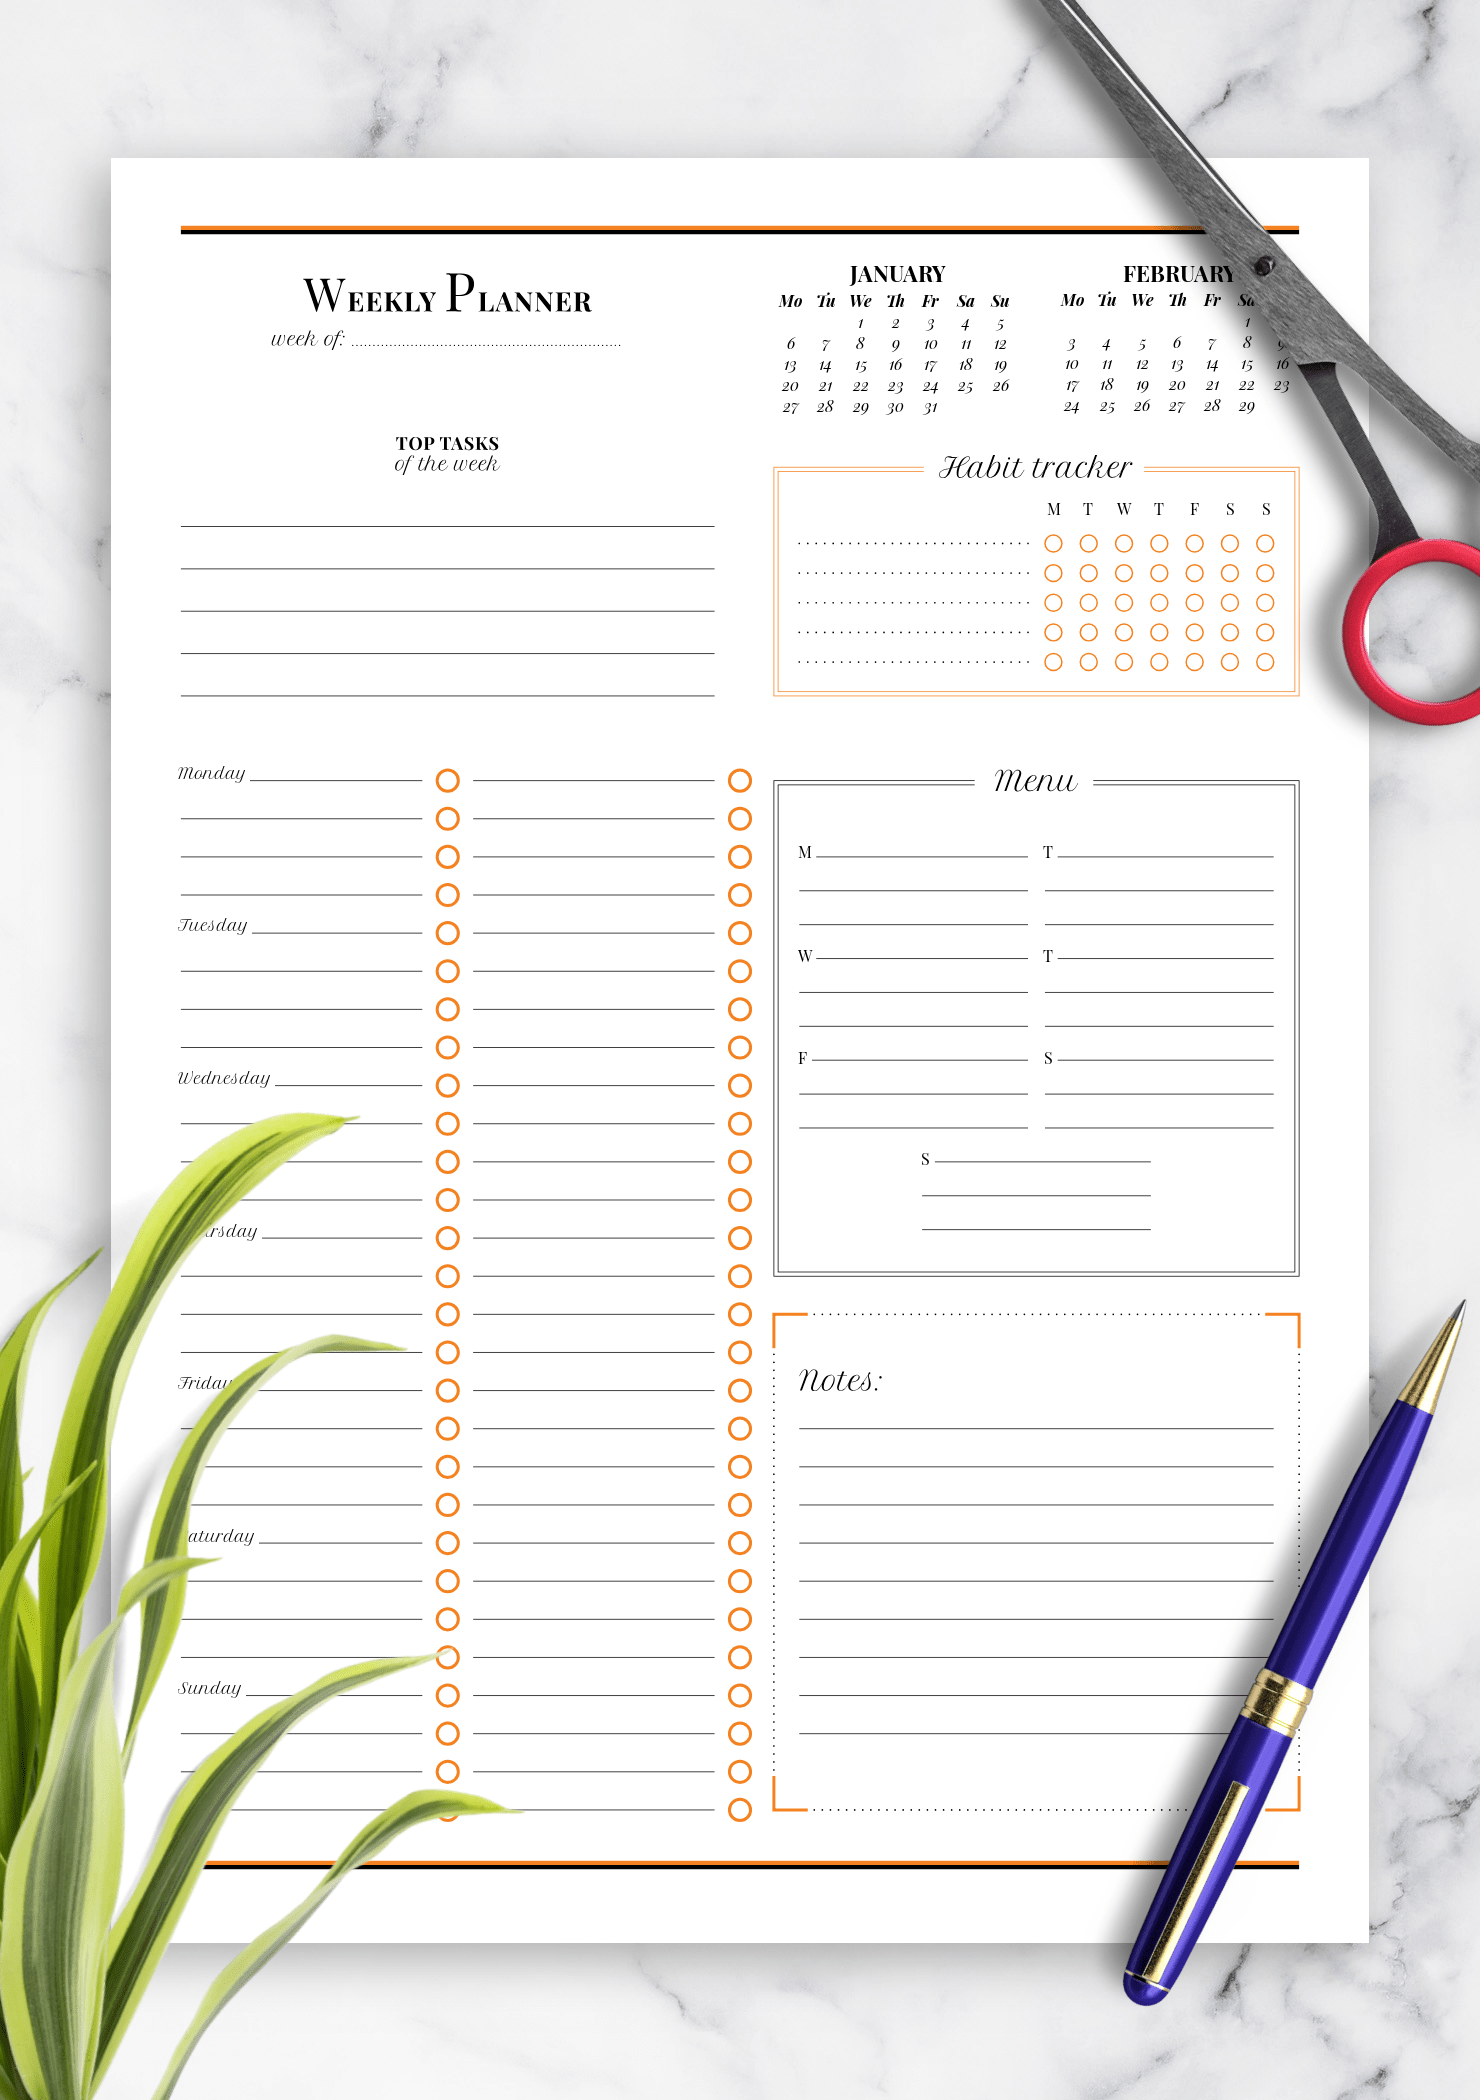 Download Printable Weekly Planner With Habit Tracker